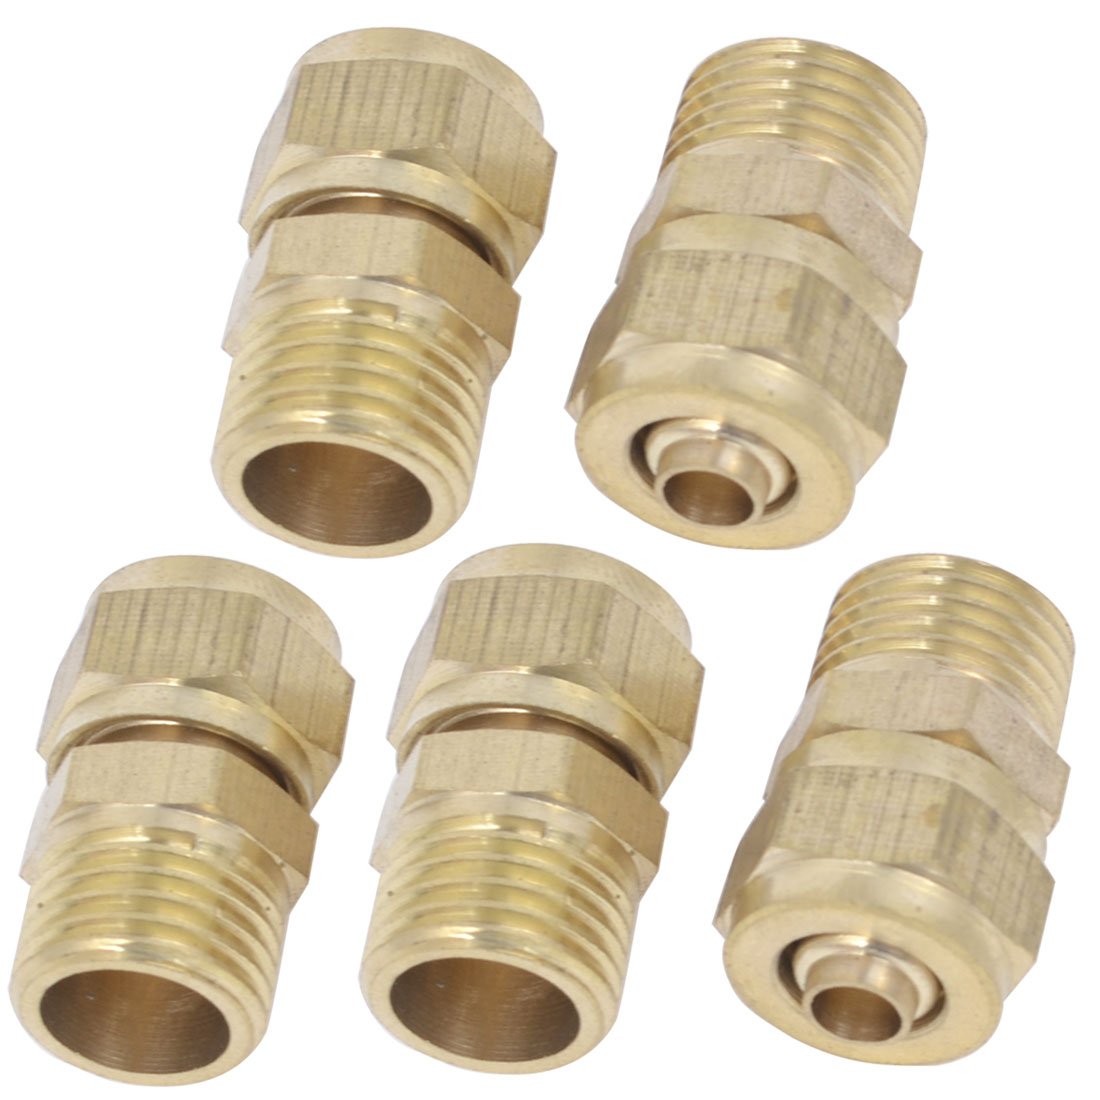 5 Pcs 8mm OD 5mm Inner Dia Hose Pneumatic Air Quick Coupler Socket Connector